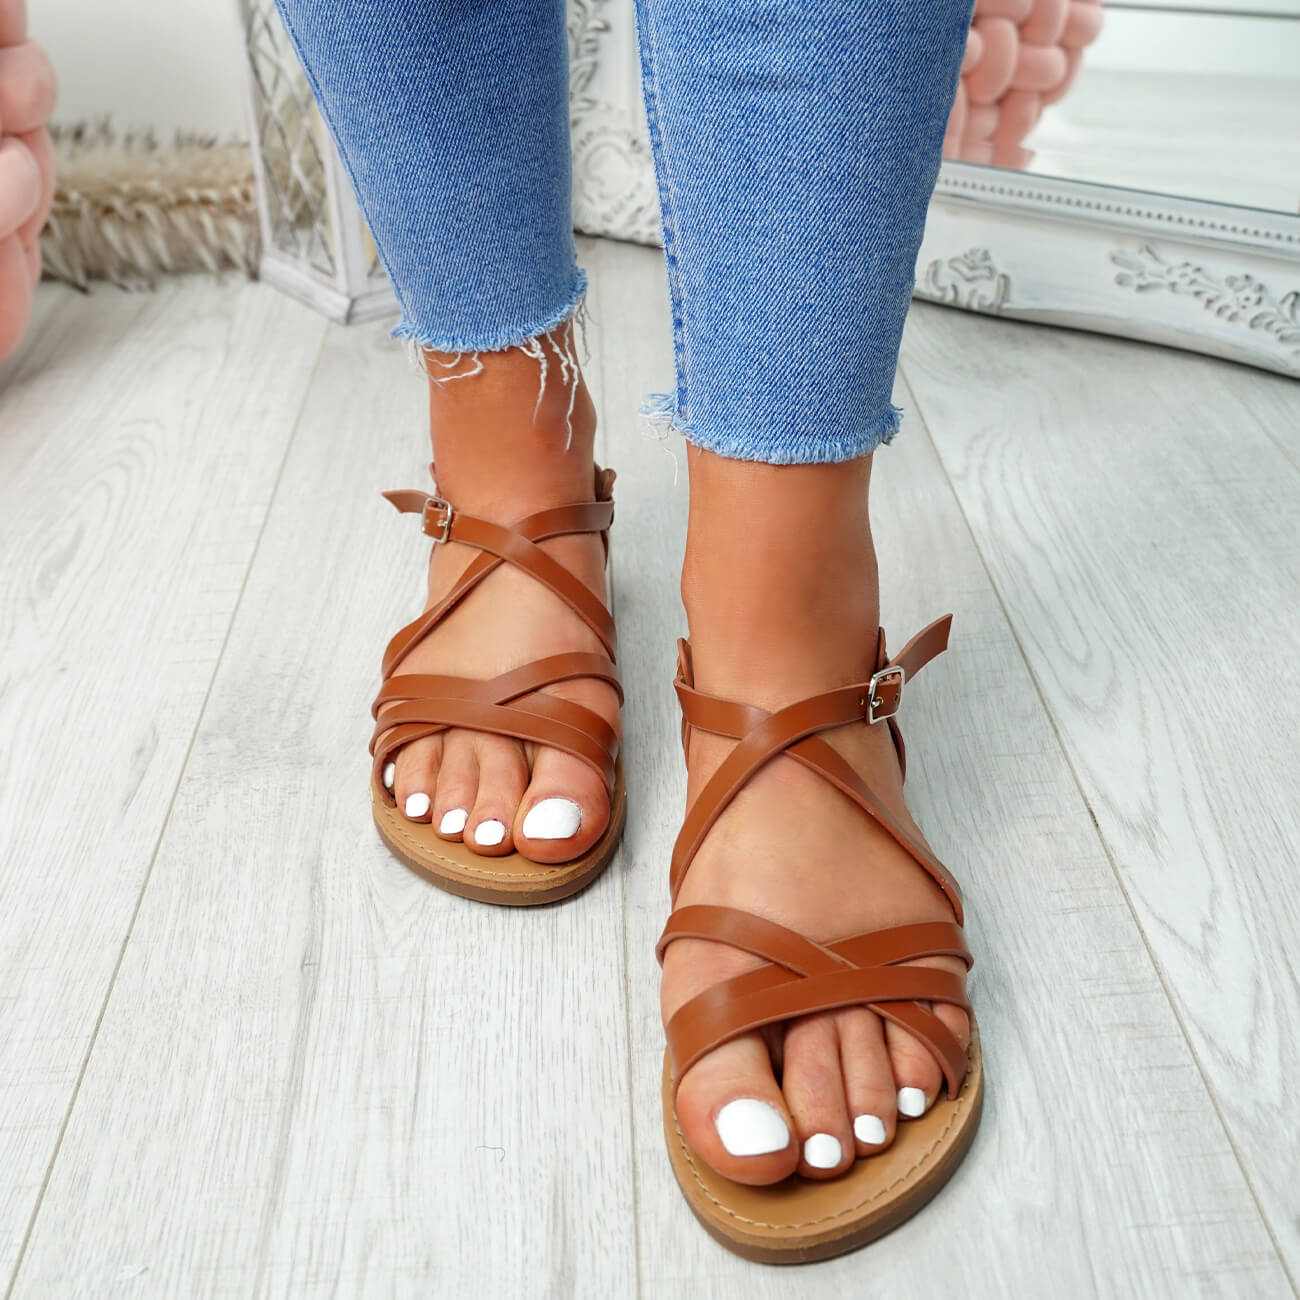 WOMENS-LADIES-ANKLE-STRAP-PEEP-TOE-BUCKLE-FLAT-SANDALS-SUMMER-CASUAL-SHOES thumbnail 14